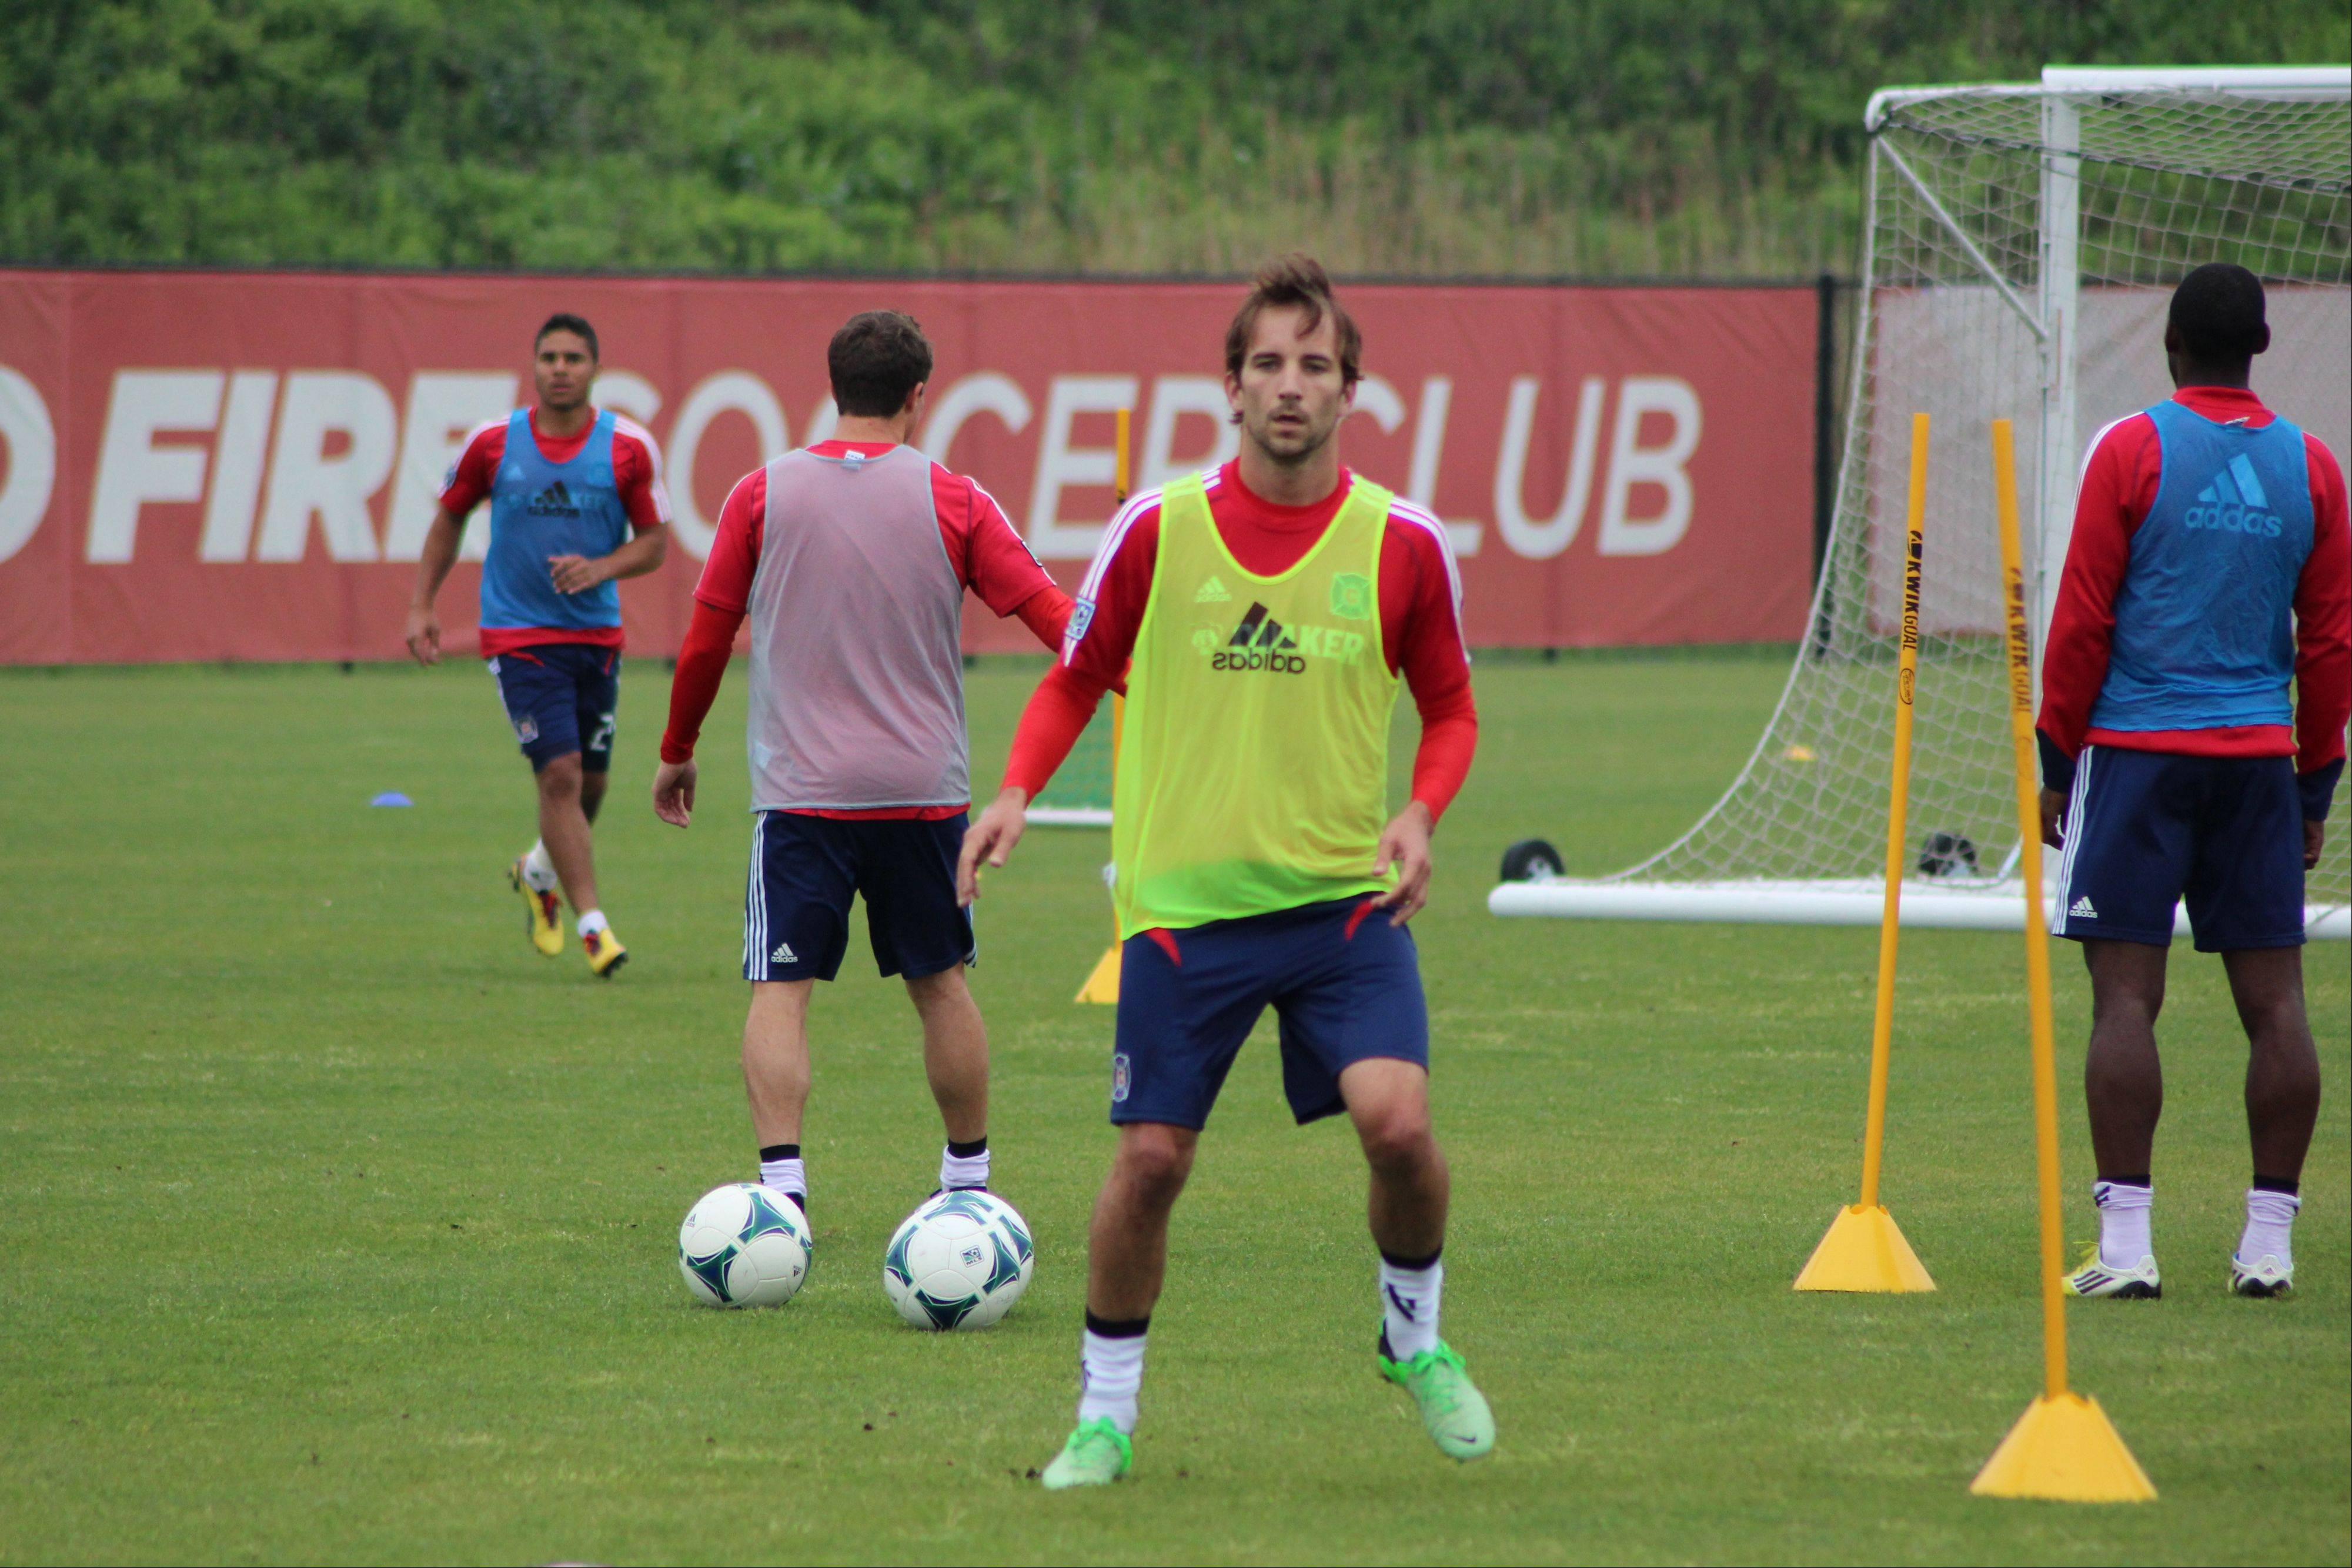 Mike Magee goes through his first training session with the Chicago Fire on Monday morning.